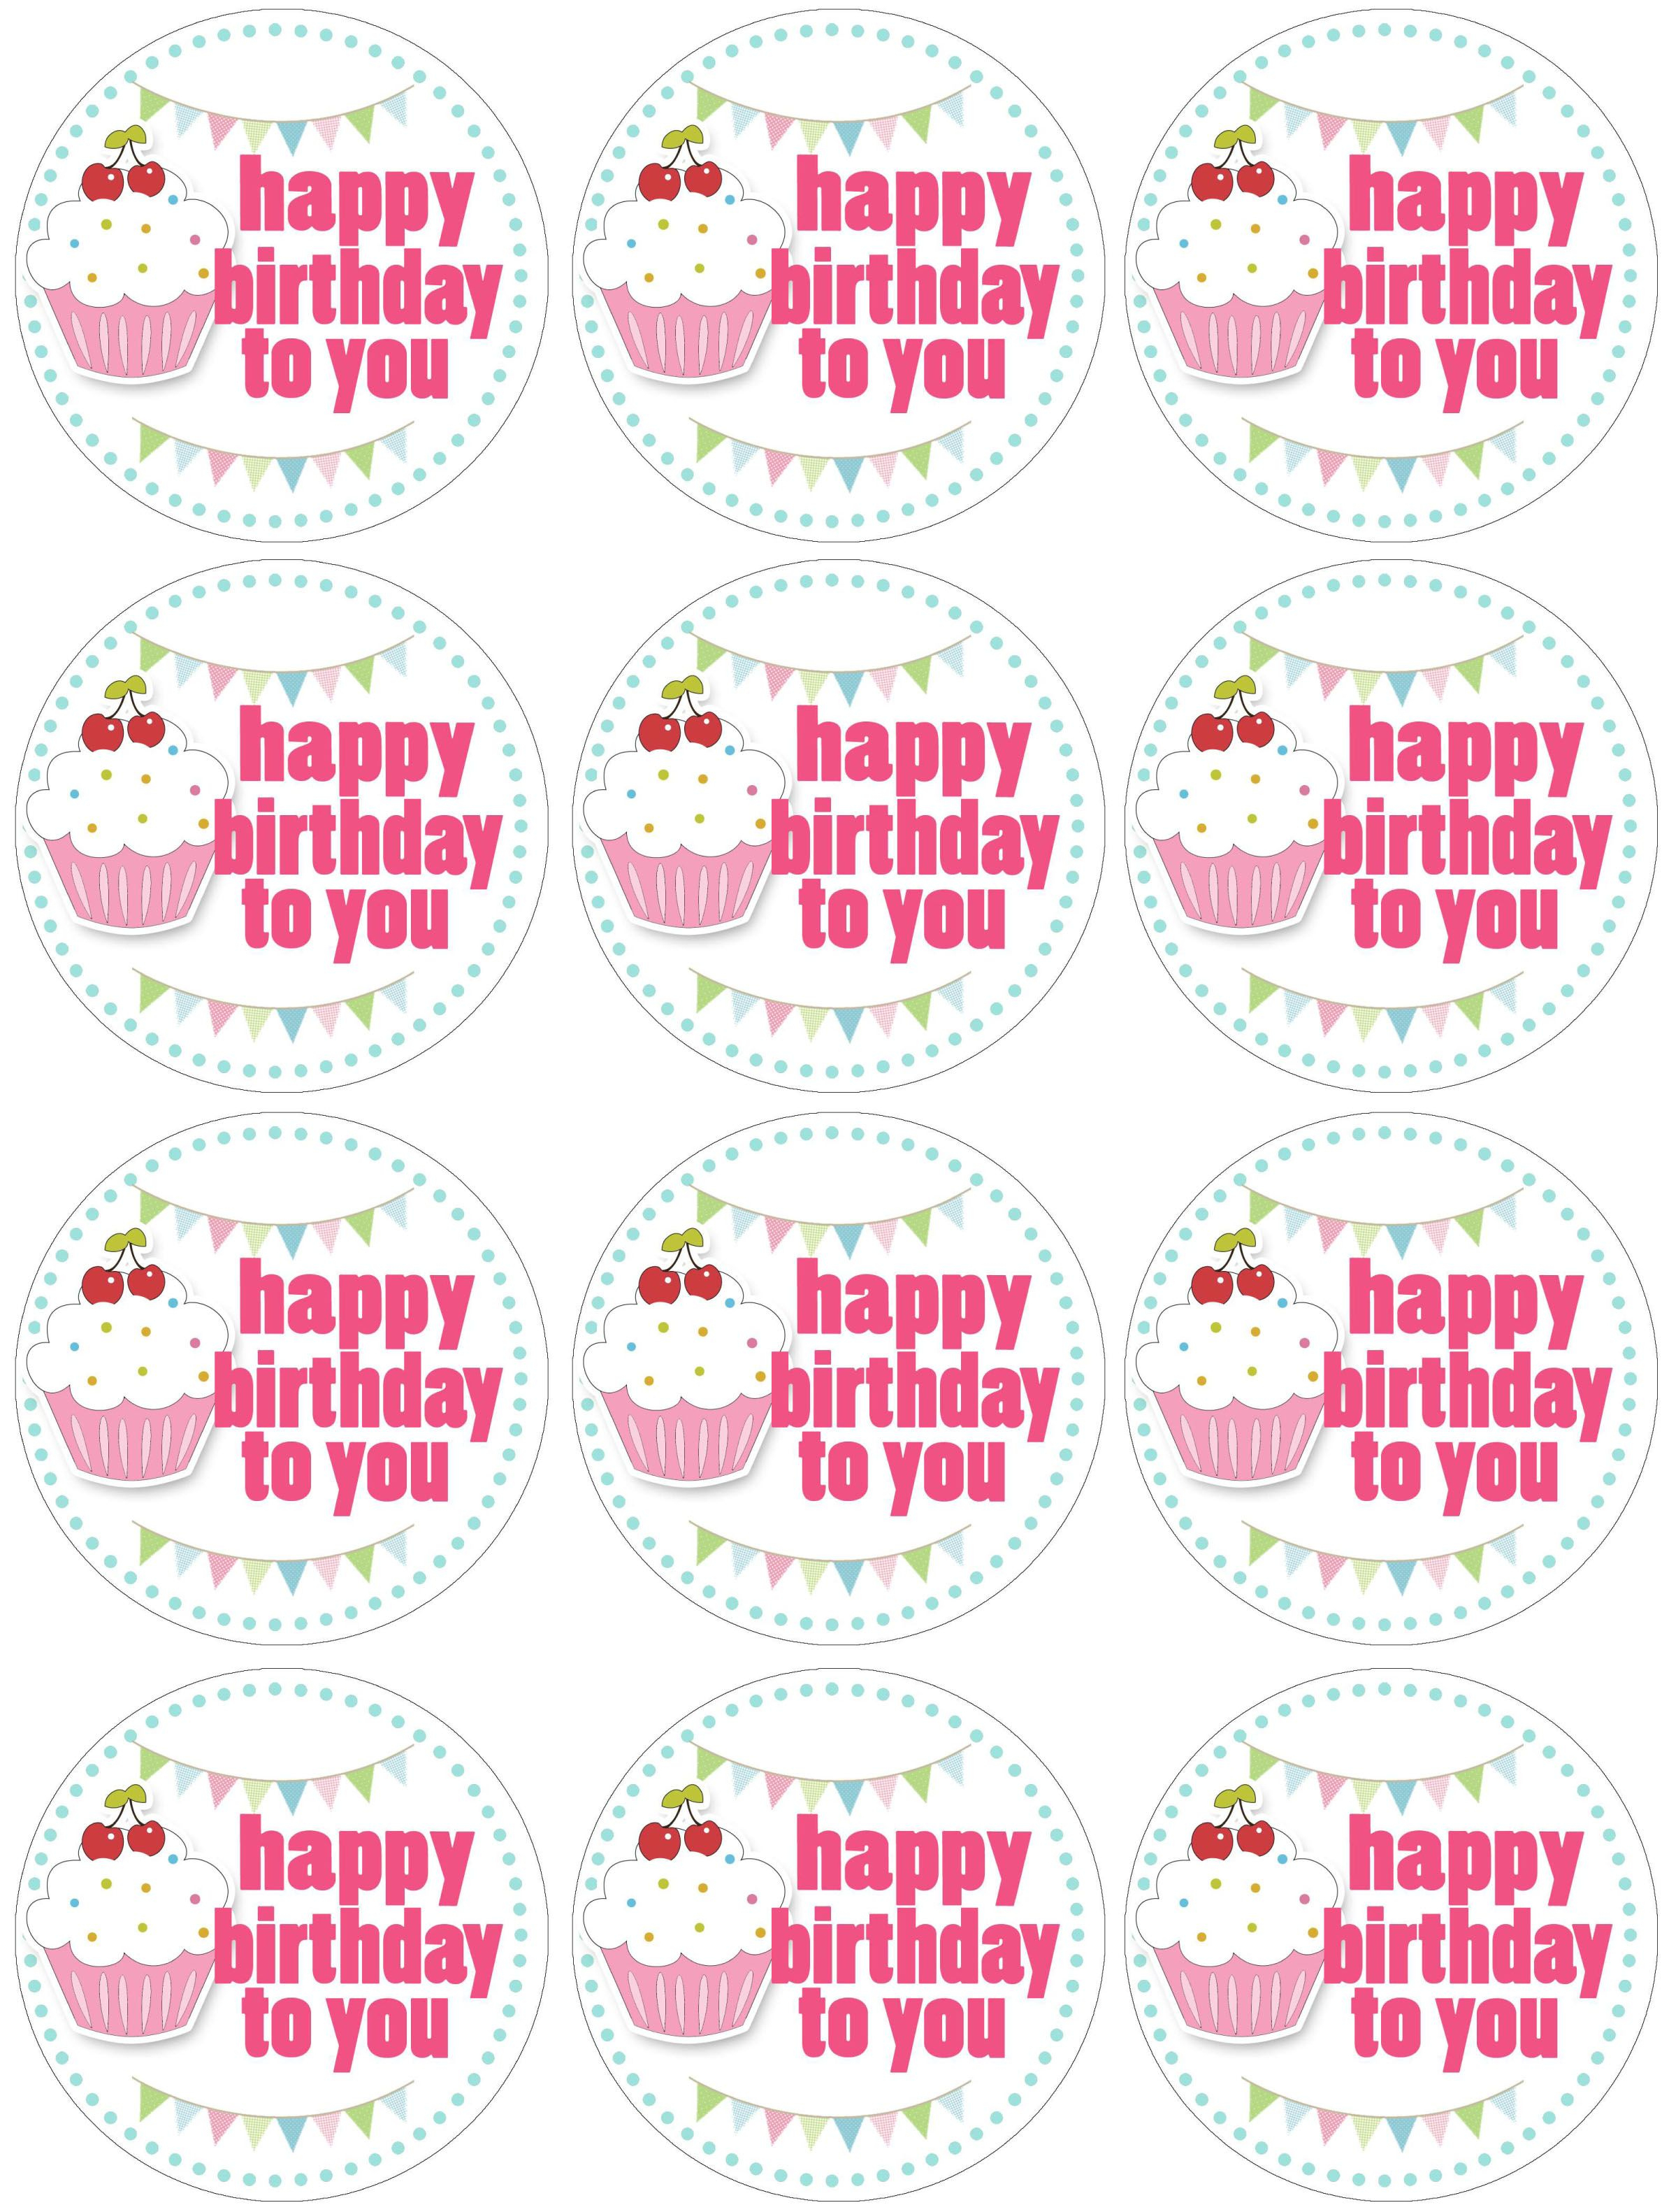 Cupcake Birthday Party With Free Printables | Free Printables - Cupcake Flags Printable Free